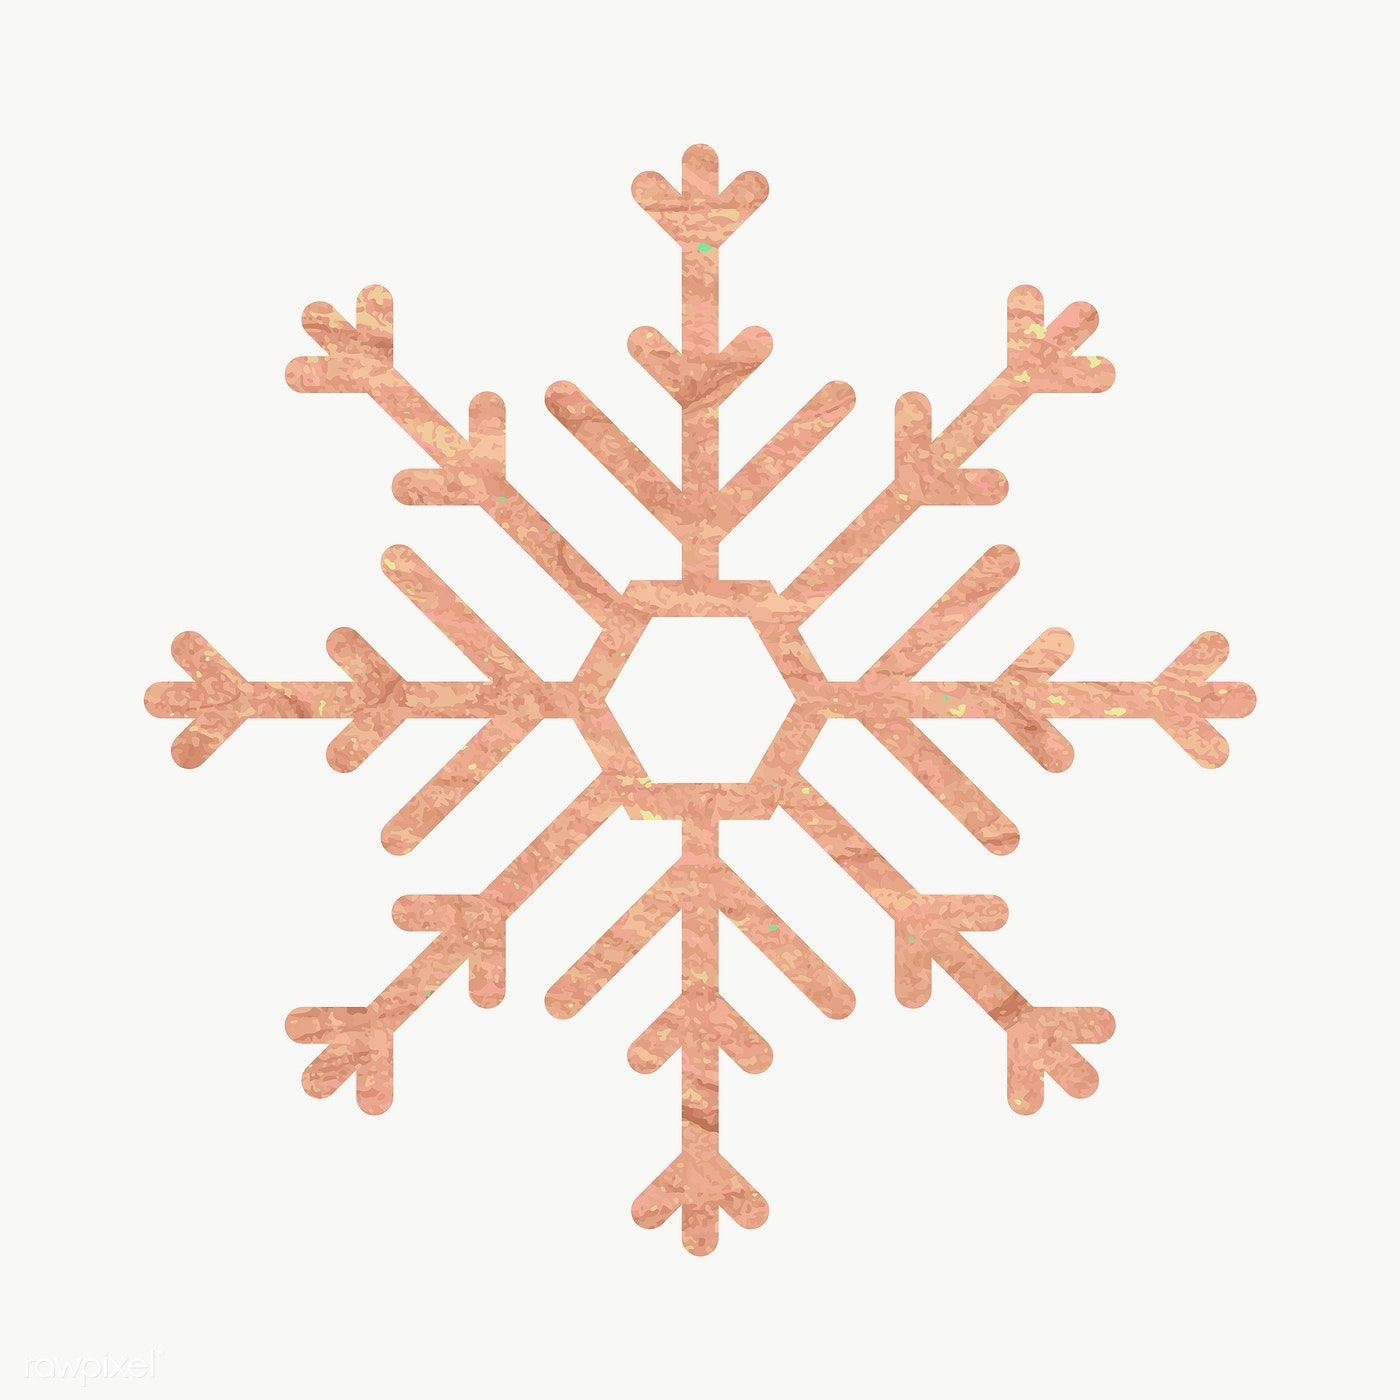 Download Premium Png Of Glittery Gold Snowflake Element Vector 1227583 Gold Snowflake Snowflakes Christmas Pattern Background